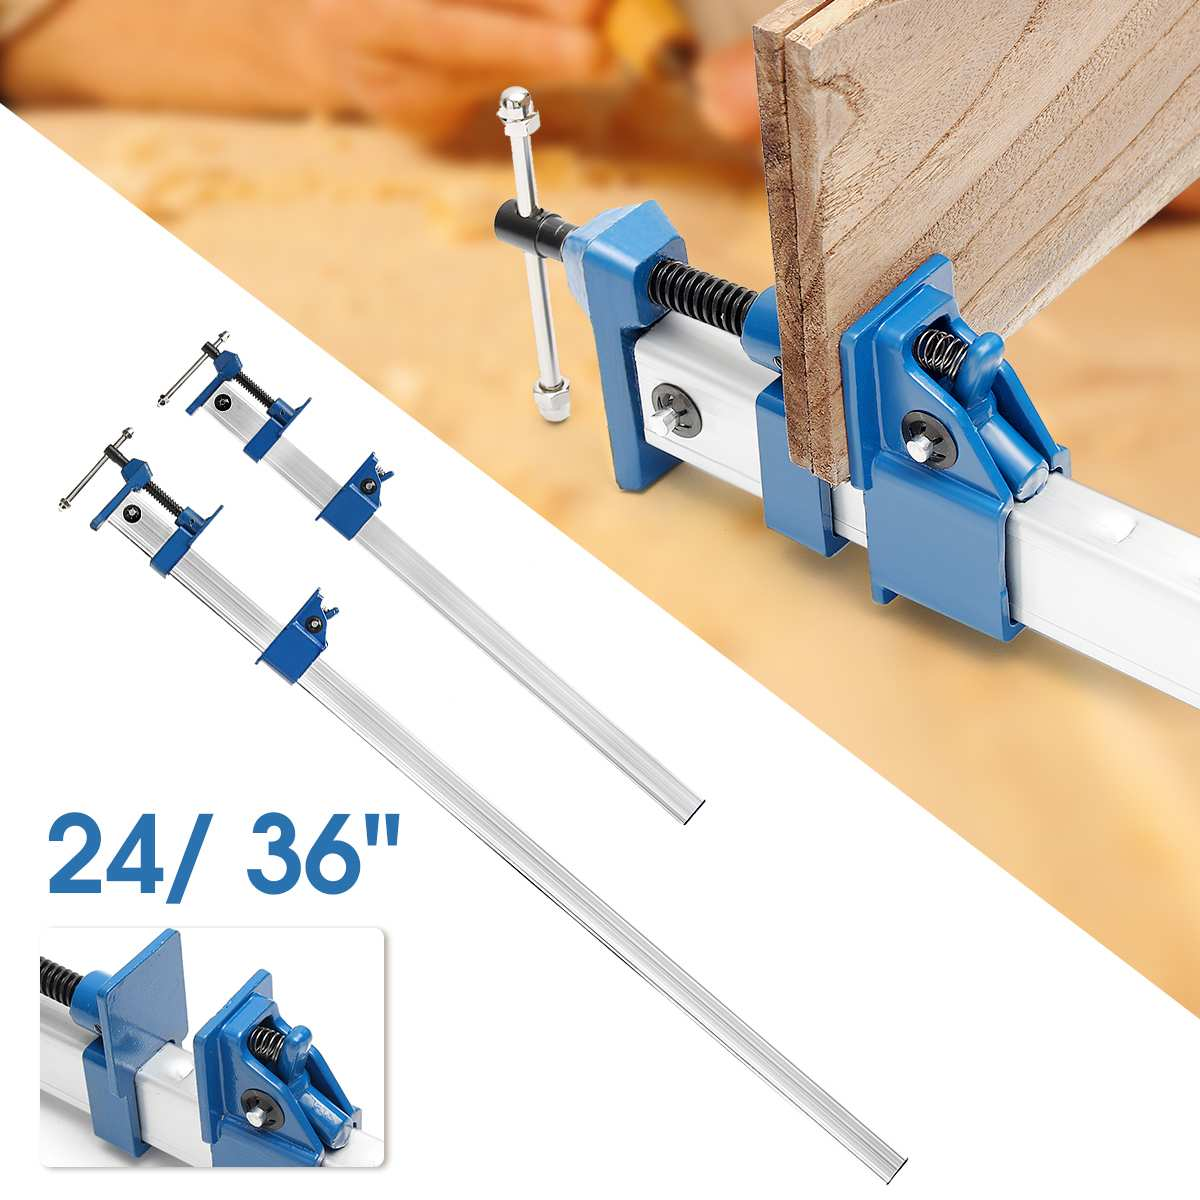 T Bar Wood Clamps DIY Heavy  F Clamp 24/36 for Woodworking Quick Release Fixture Sash Long Cramp Bench Wood GripT Bar Wood Clamps DIY Heavy  F Clamp 24/36 for Woodworking Quick Release Fixture Sash Long Cramp Bench Wood Grip